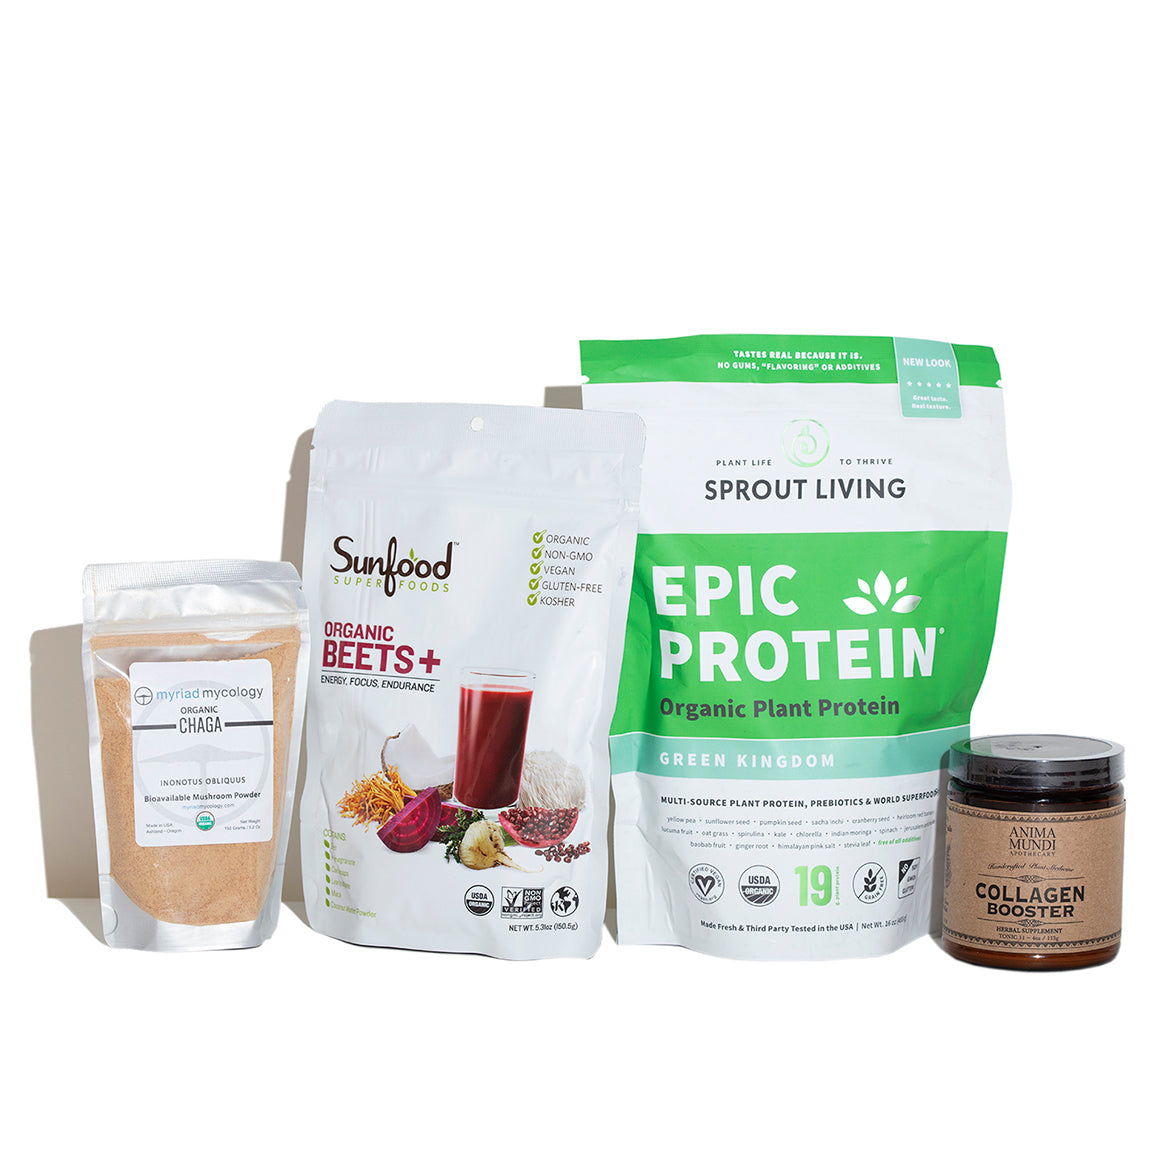 Products included in the Elevate Your Smoothie Kit